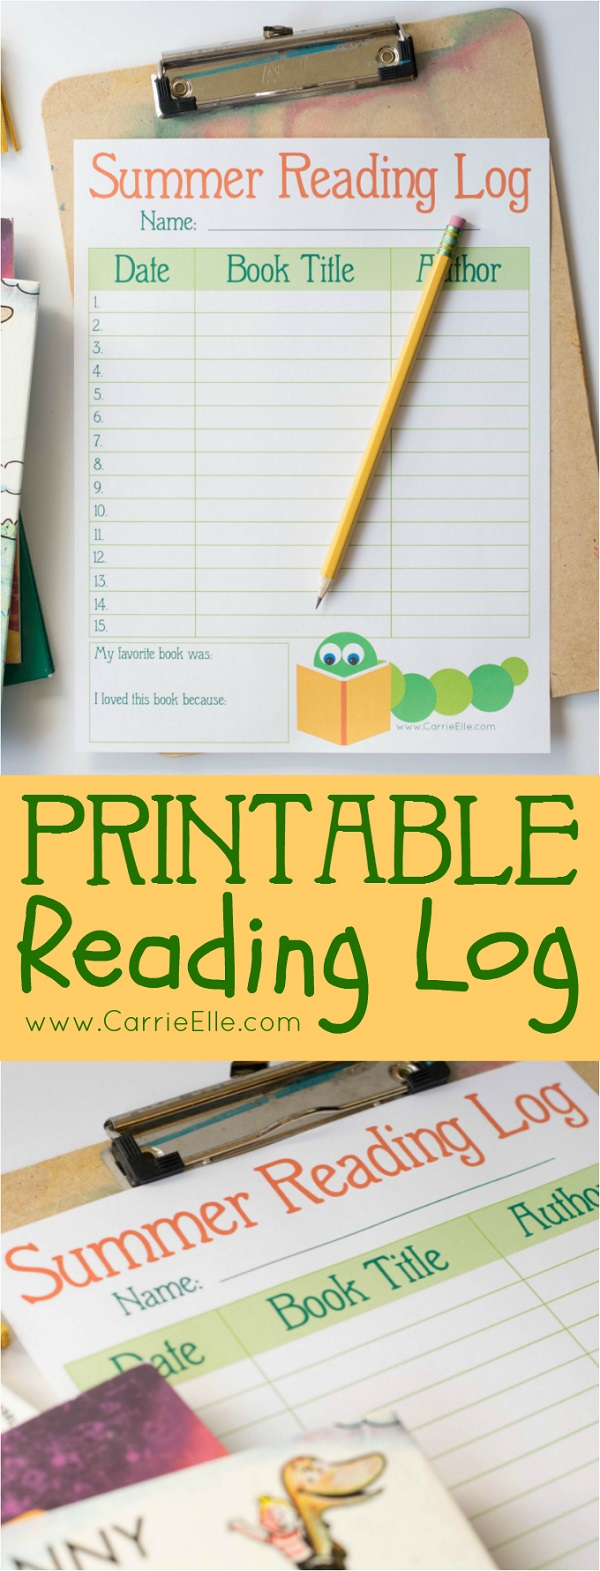 Printable-Reading-Log-for-Kids